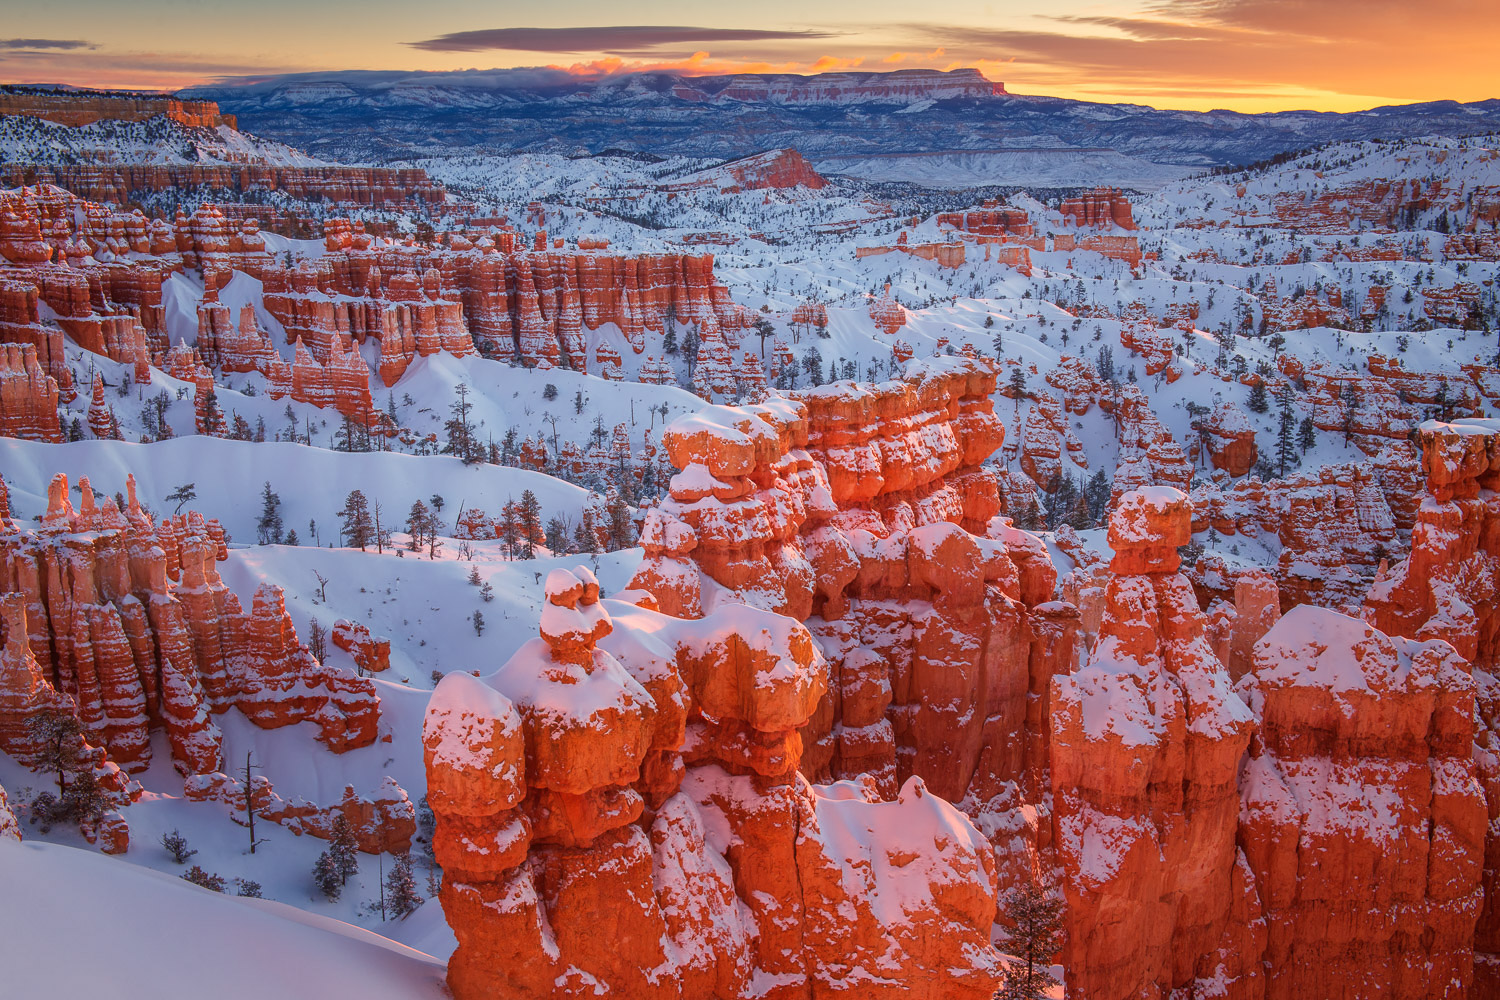 Winter sunrise over the Hoodoos of Bryce Canyon from Sunet Point.